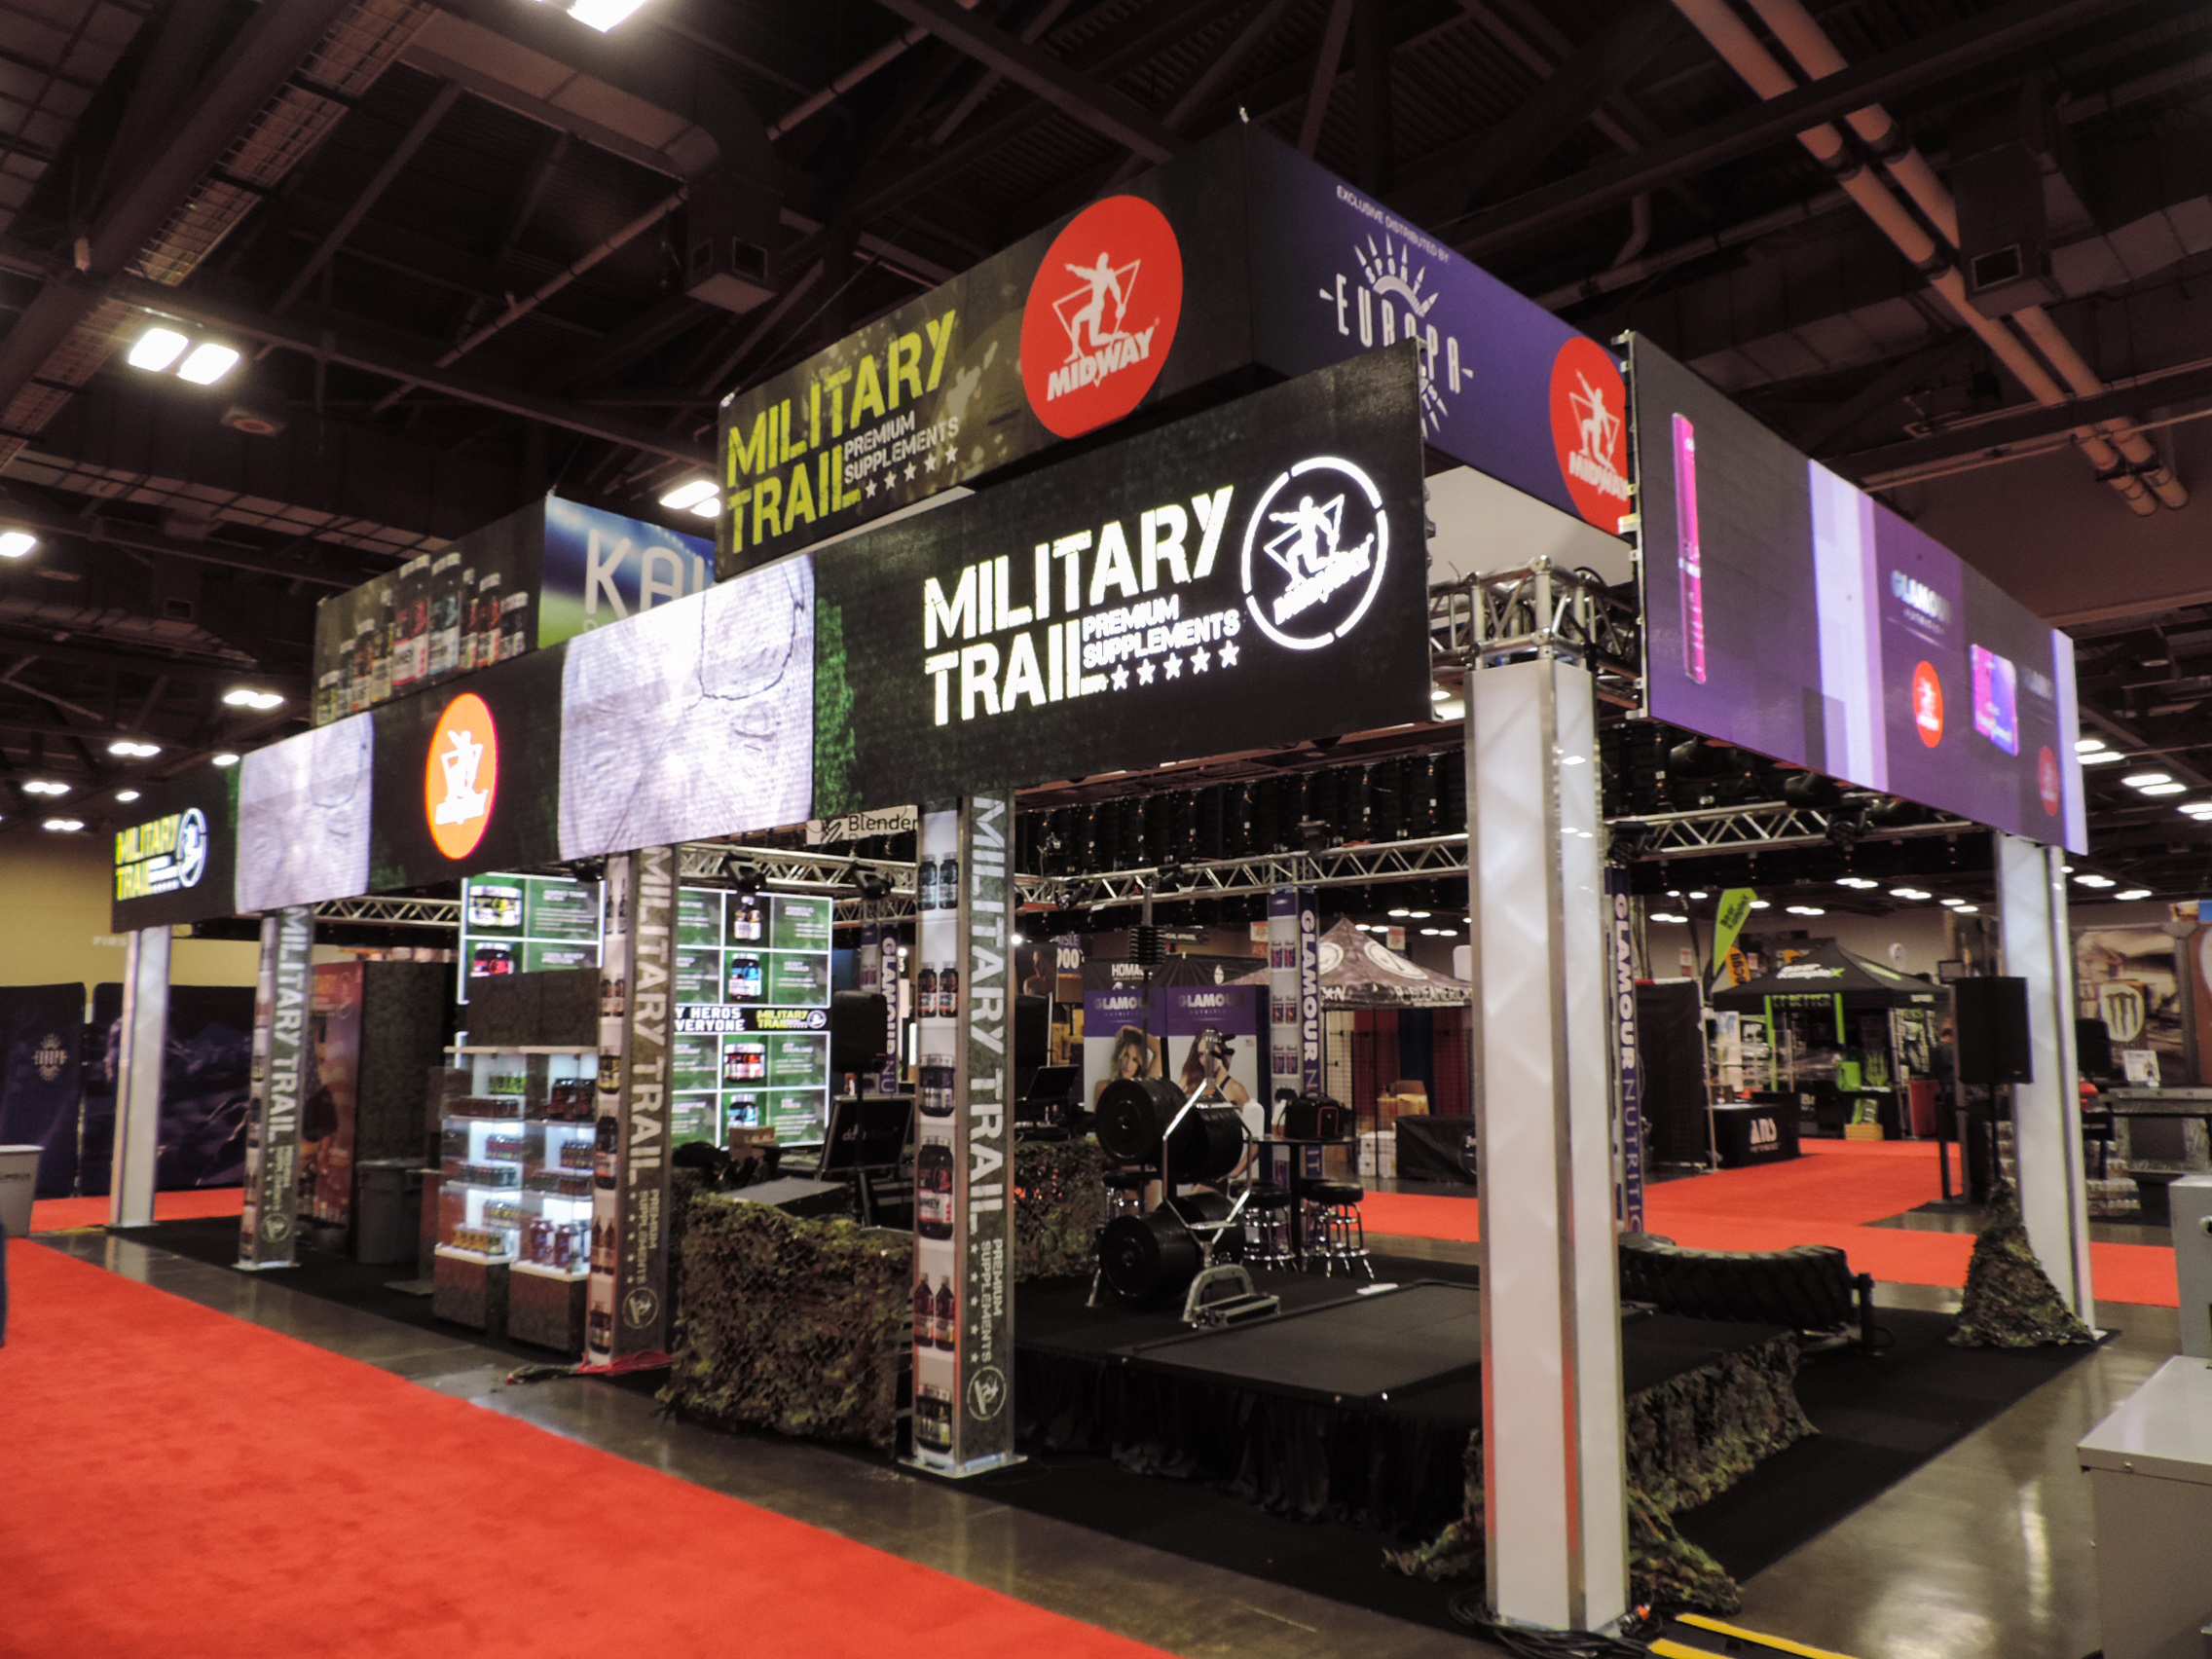 Military Trail Booth.